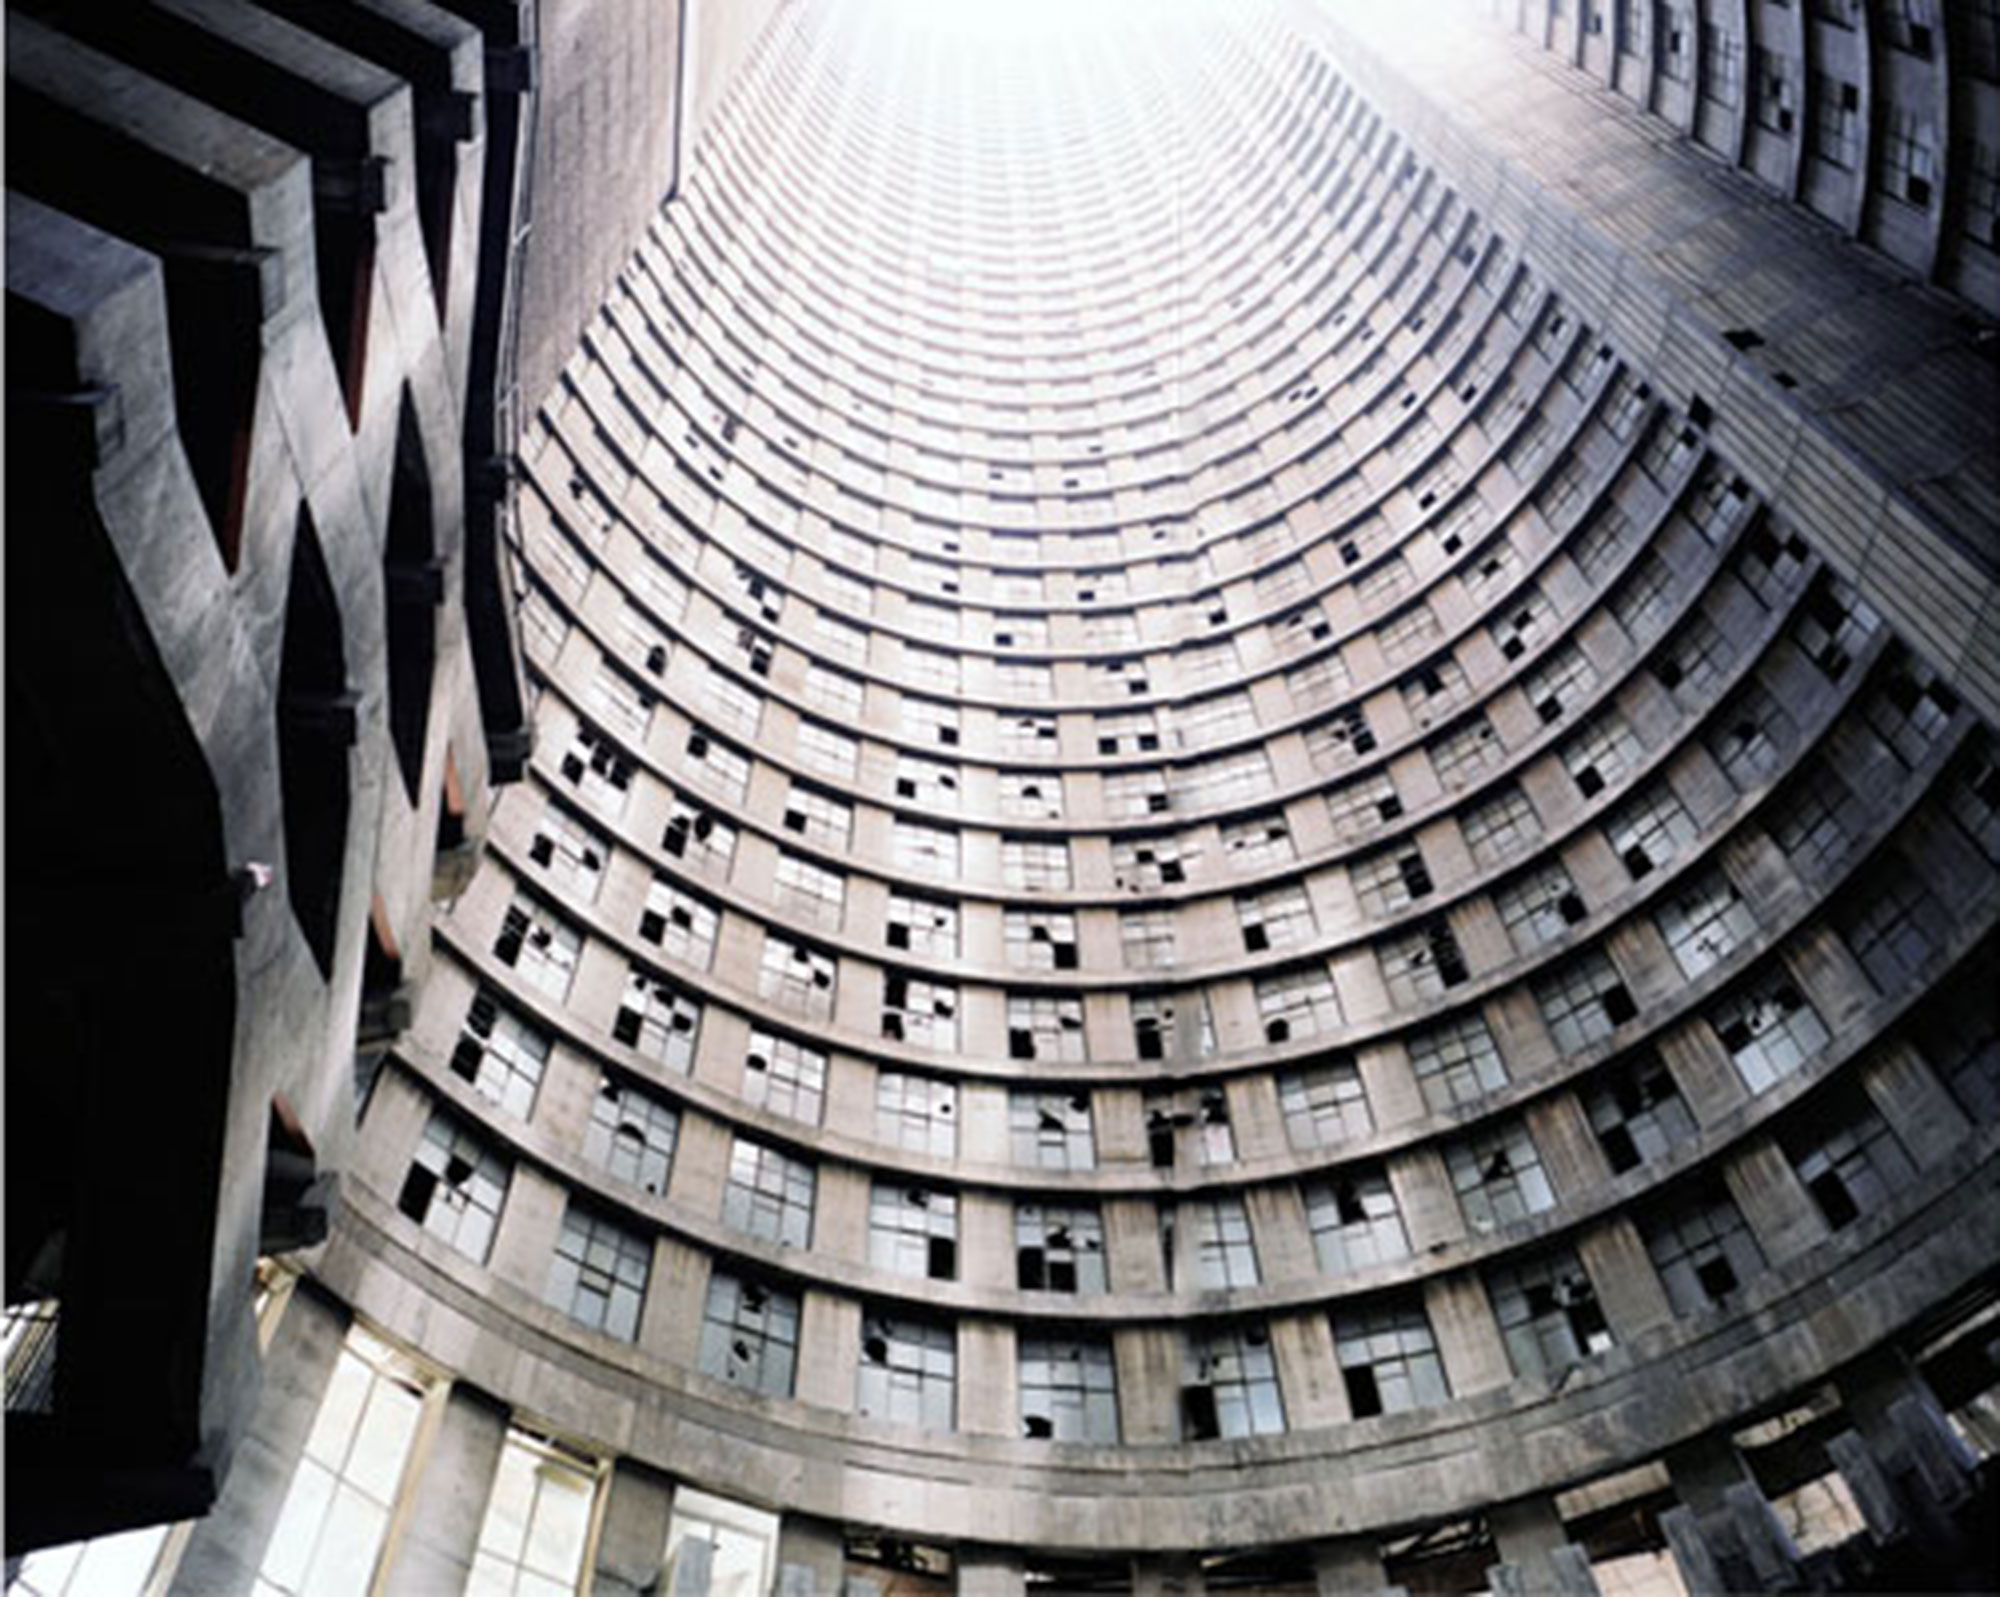 From the series Ponte City by Mikhael Subotzky.